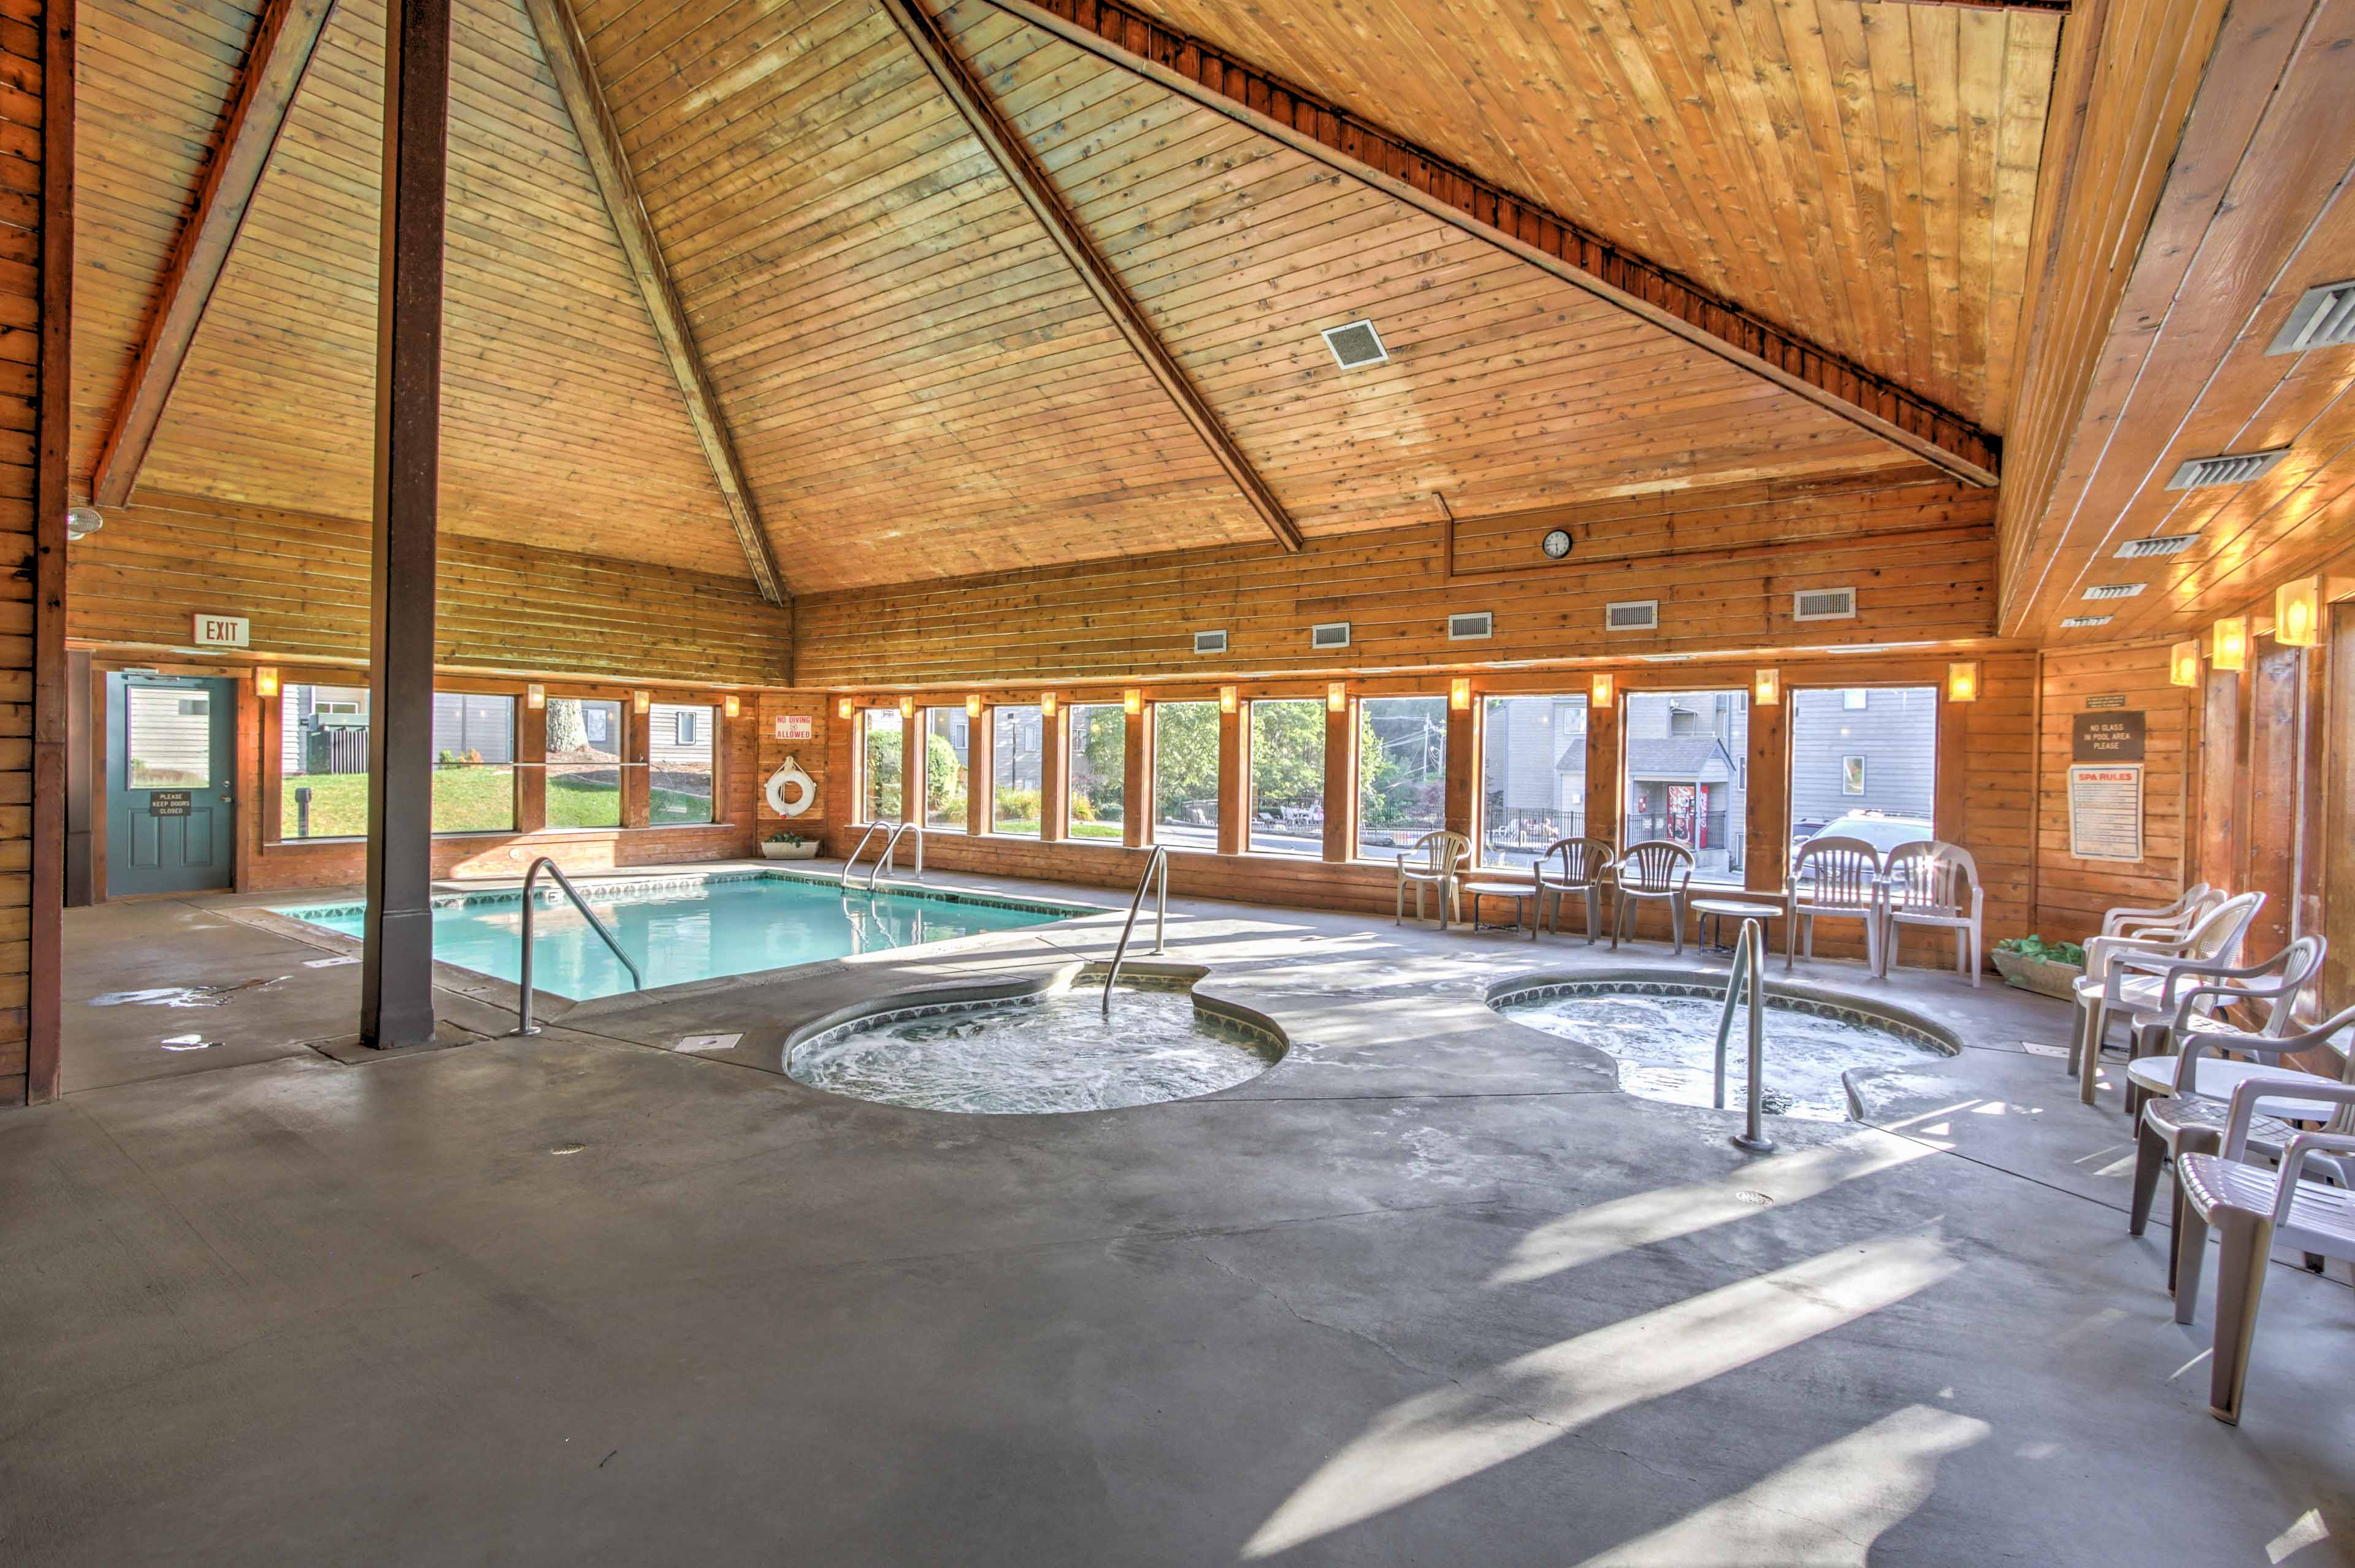 Dip into the hot tub or indoor pool.